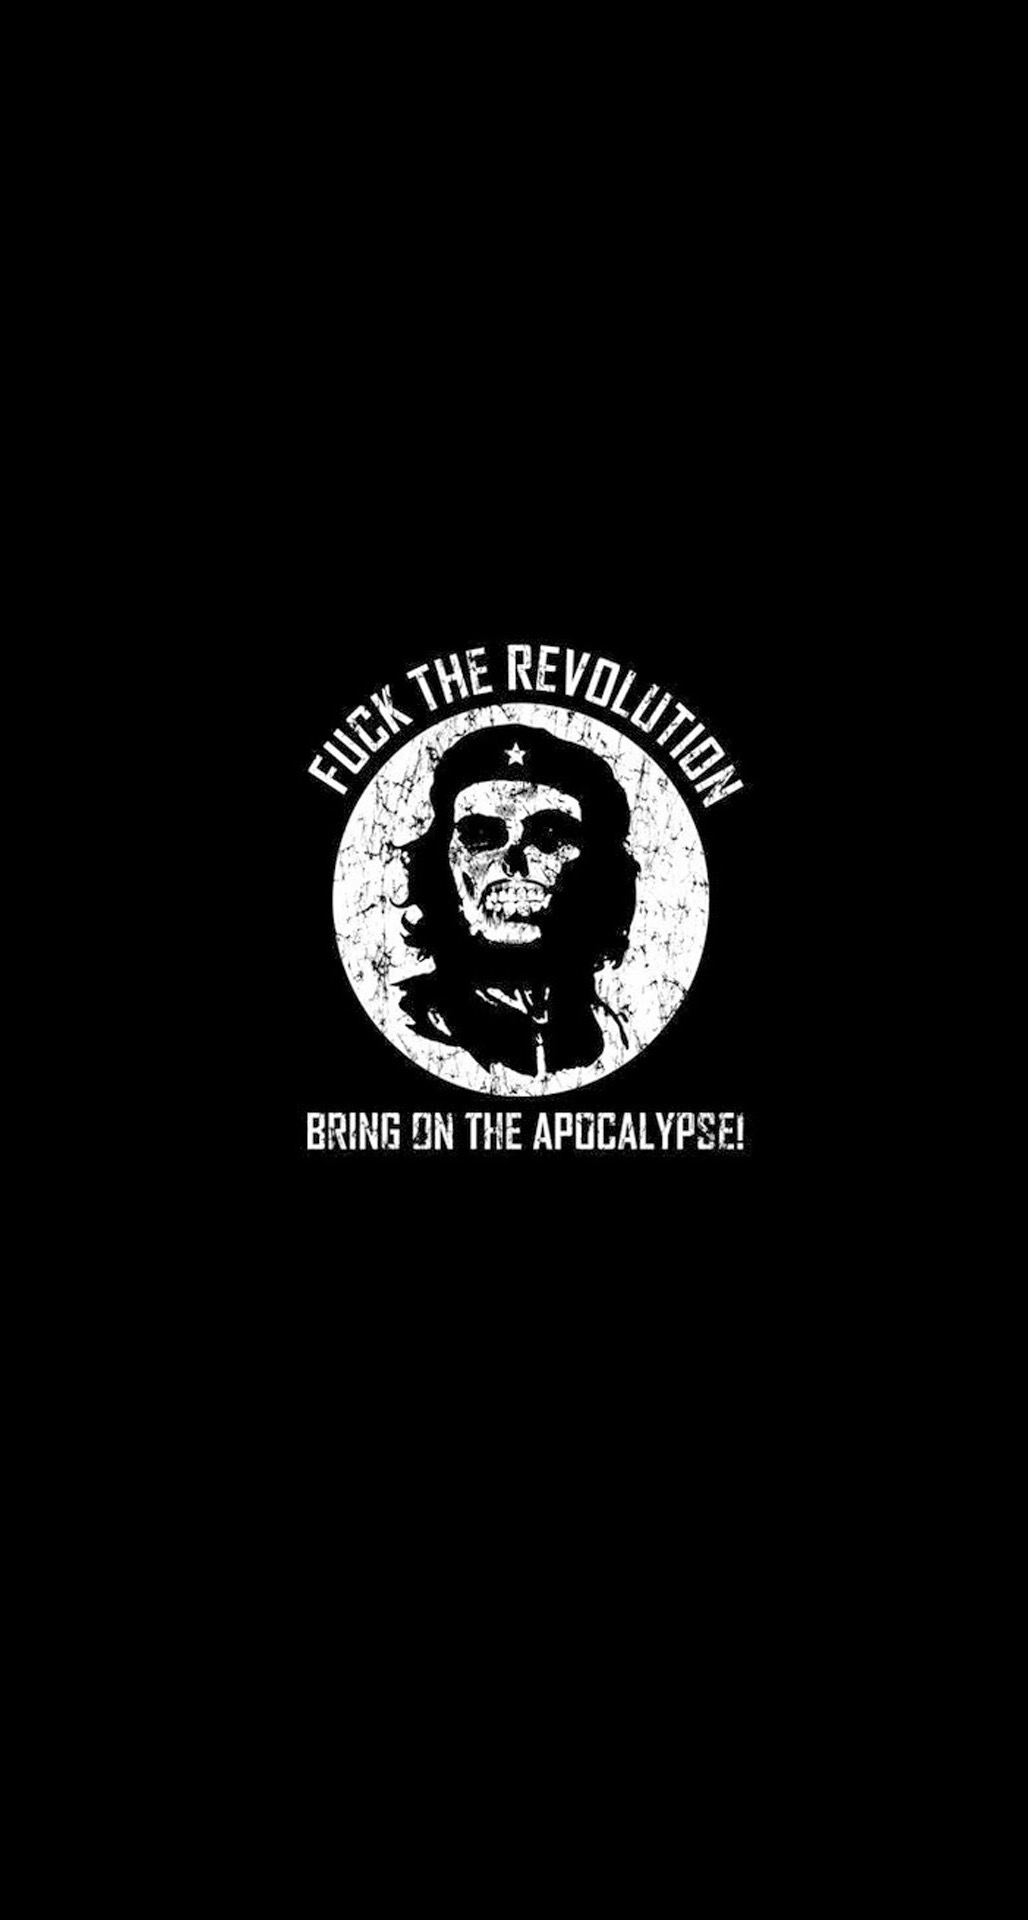 Bring-On-The-Apocalypse-Che-Guevara-iPhone-6-Plus-HD-Wallpaper